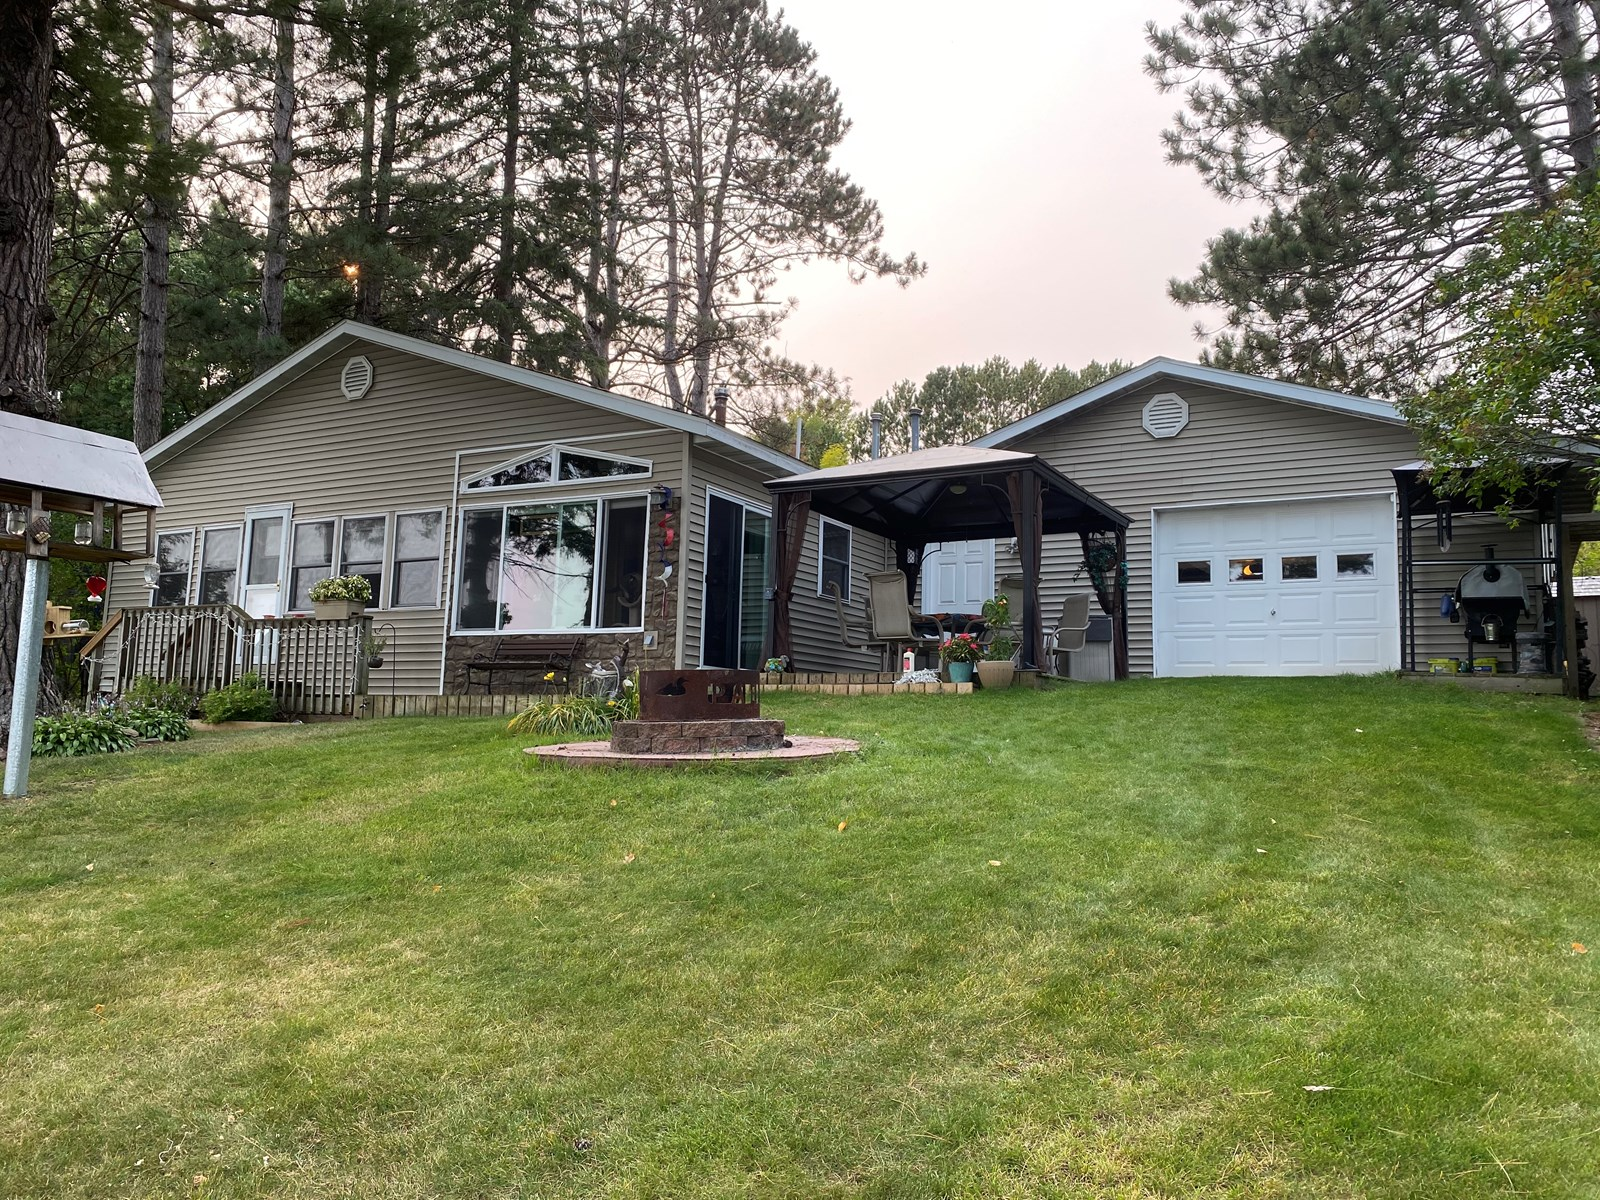 Lake Home For Sale in Finlayson, Minnesota